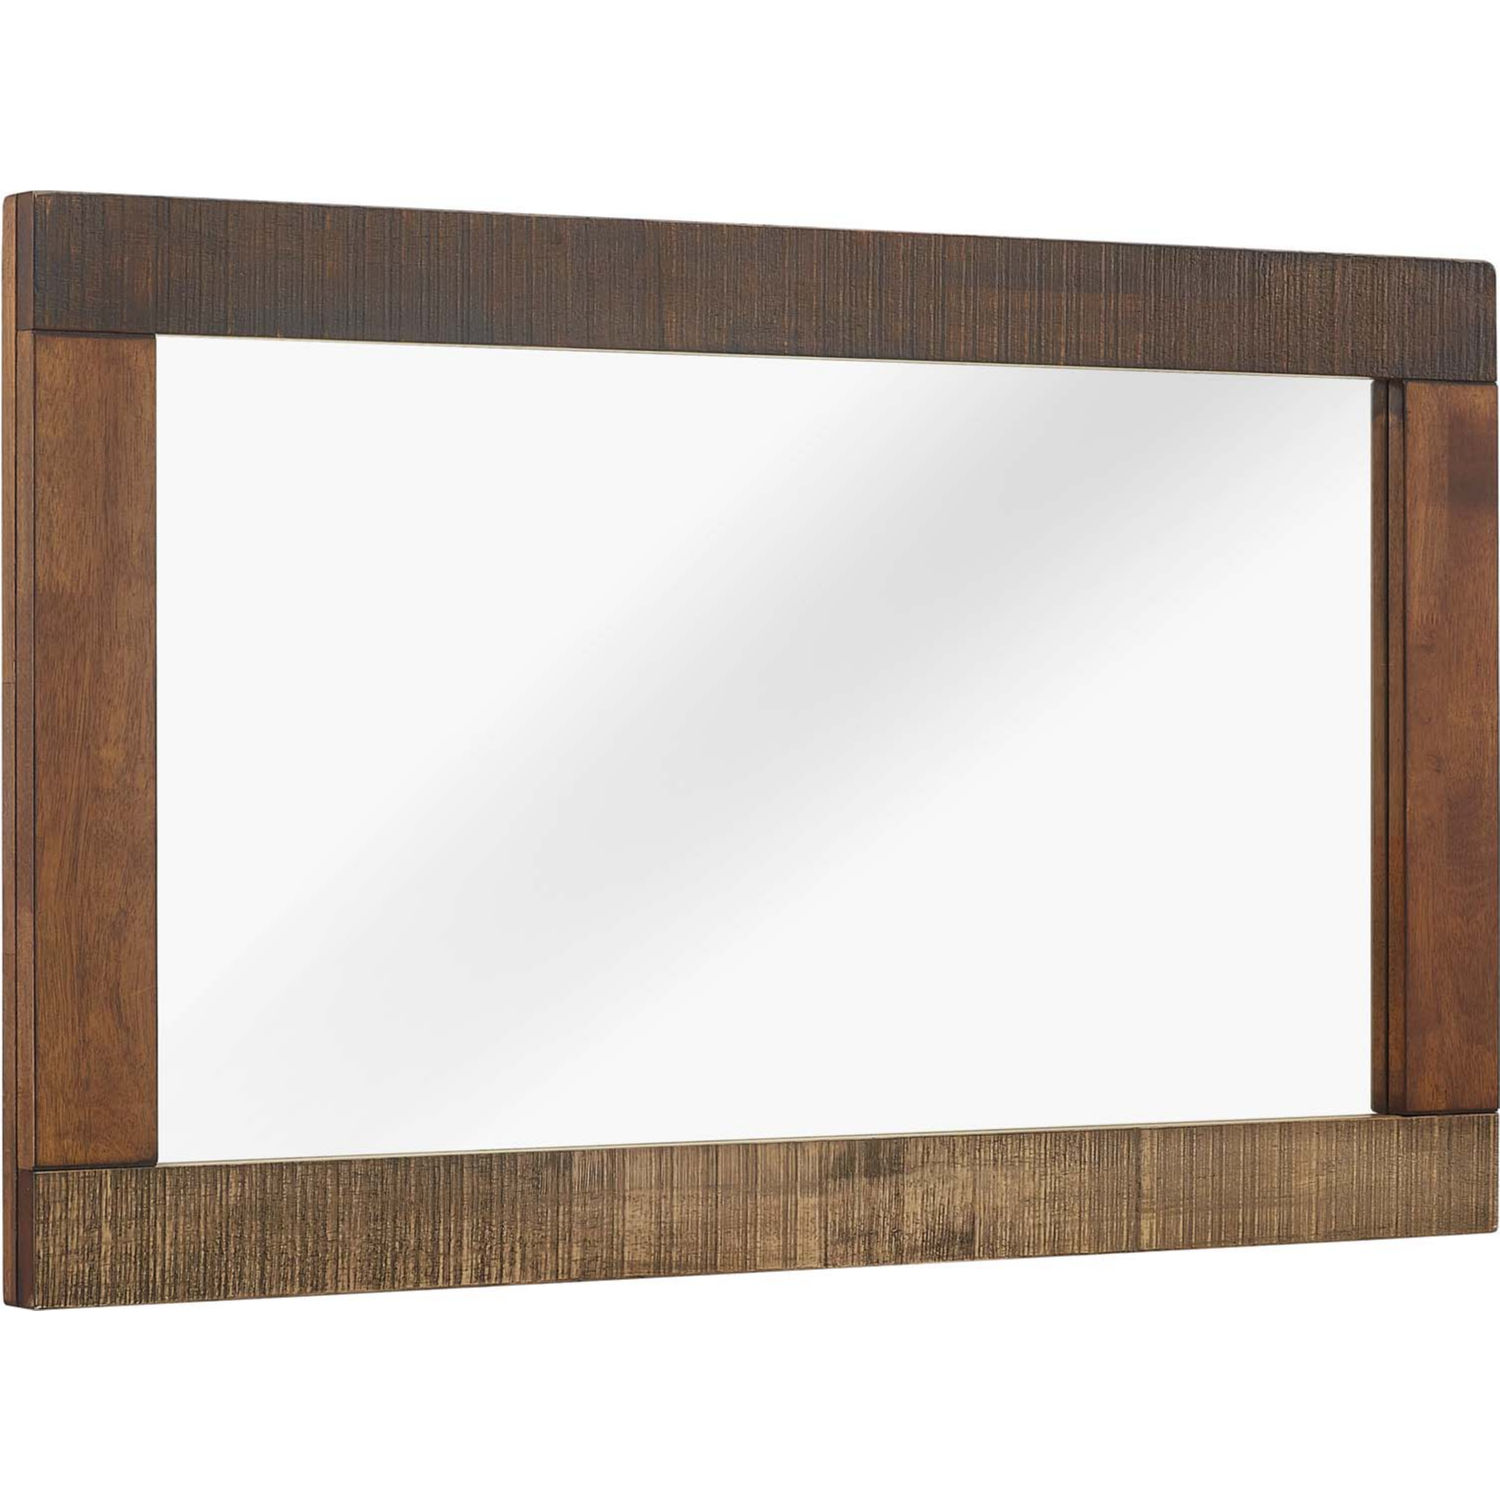 Arwen Rustic Wood Frame Mirror In Walnut Finish Natural By Modway